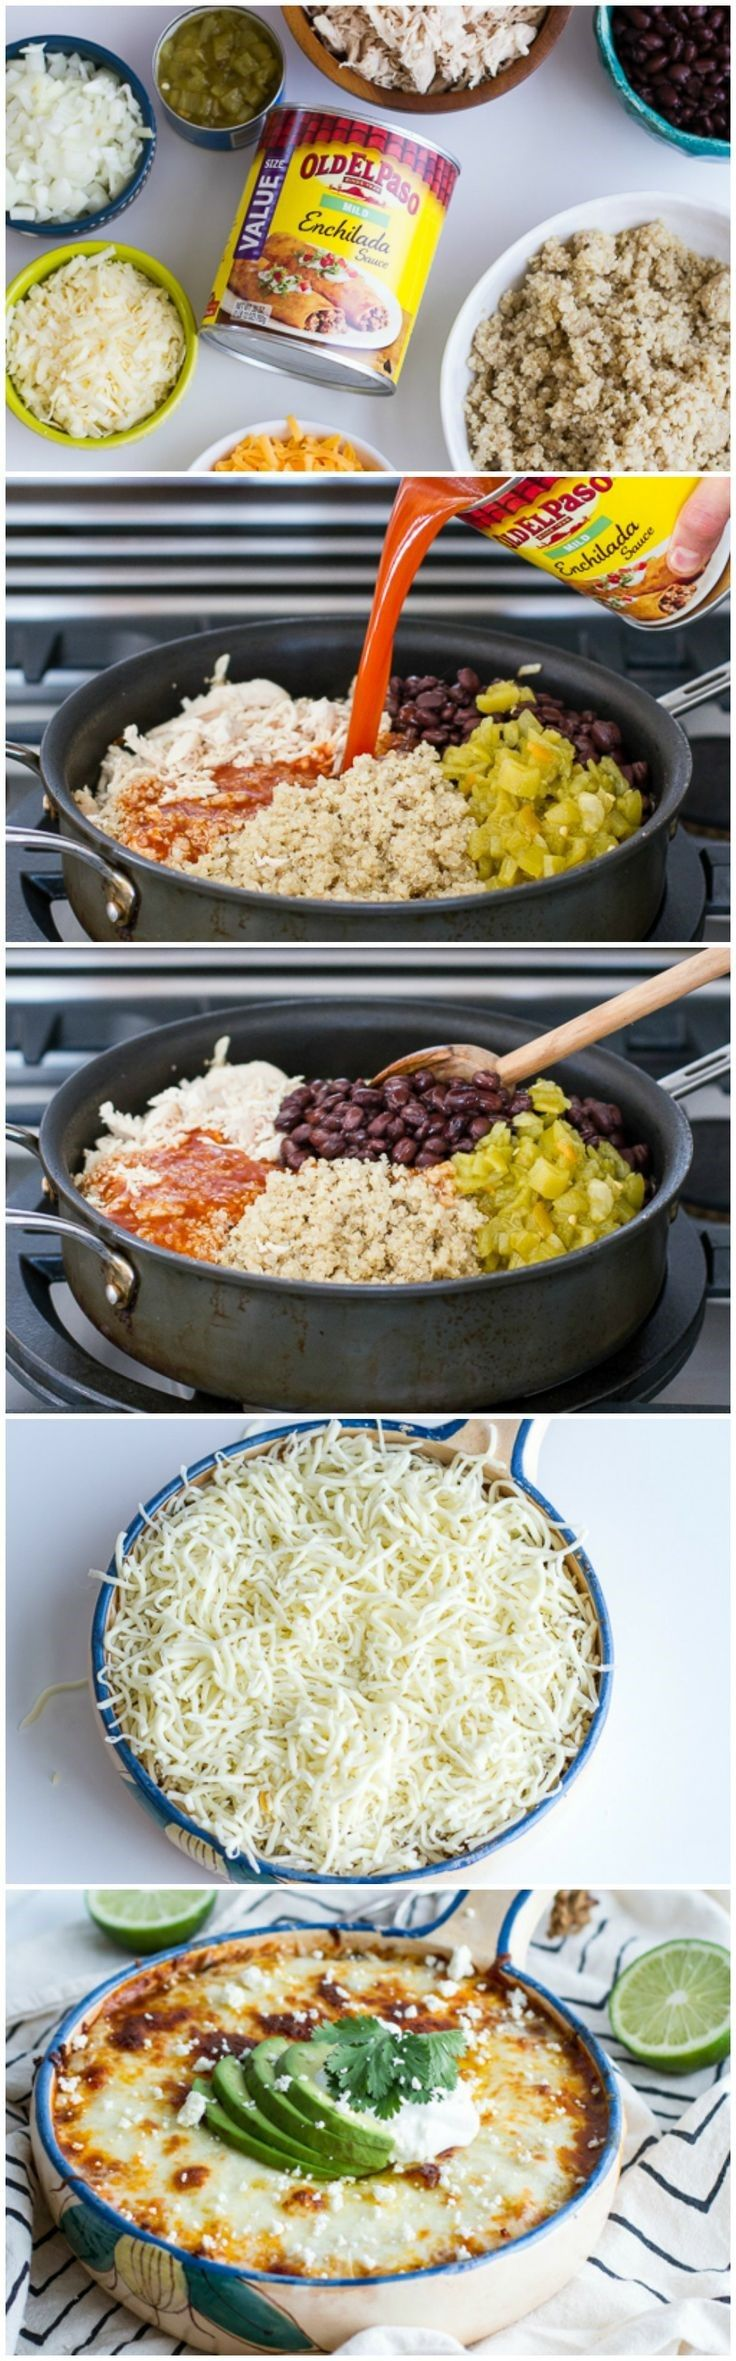 This healthy alternative to enchiladas will blow your mind! Such a simple dish that you can jazz up with any of your favorite taco/enchilada toppings. A great option for your next potluck fiesta or...